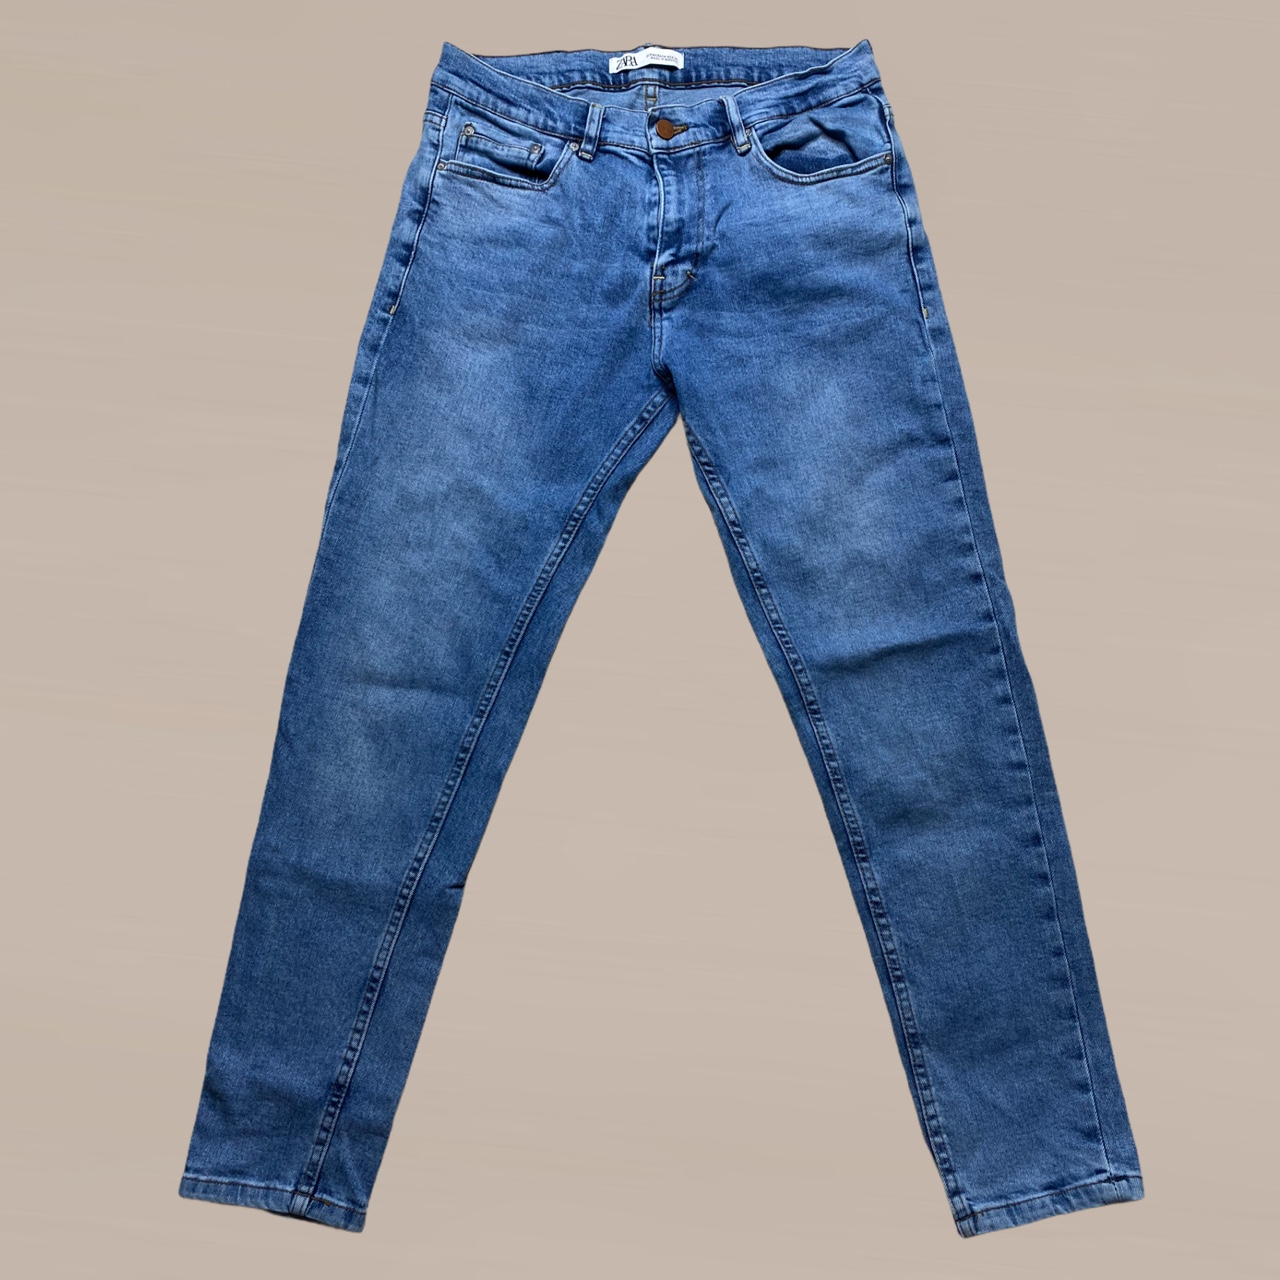 Product Image 1 - Zara Blue Skinny Jeans💌  Have stretch